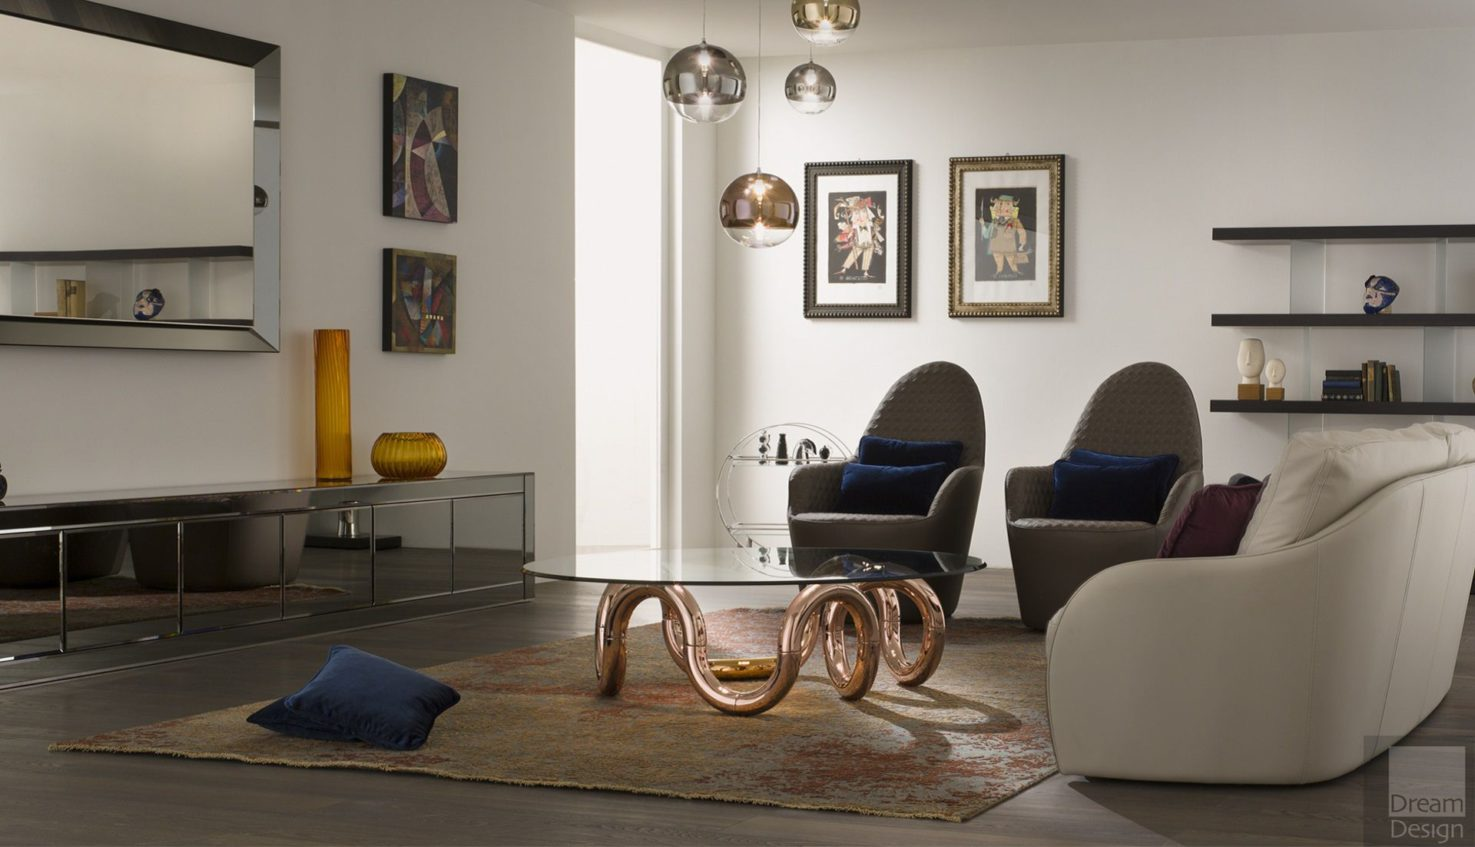 Reflex Angelo Aenigma 40 Rame Coffee Table